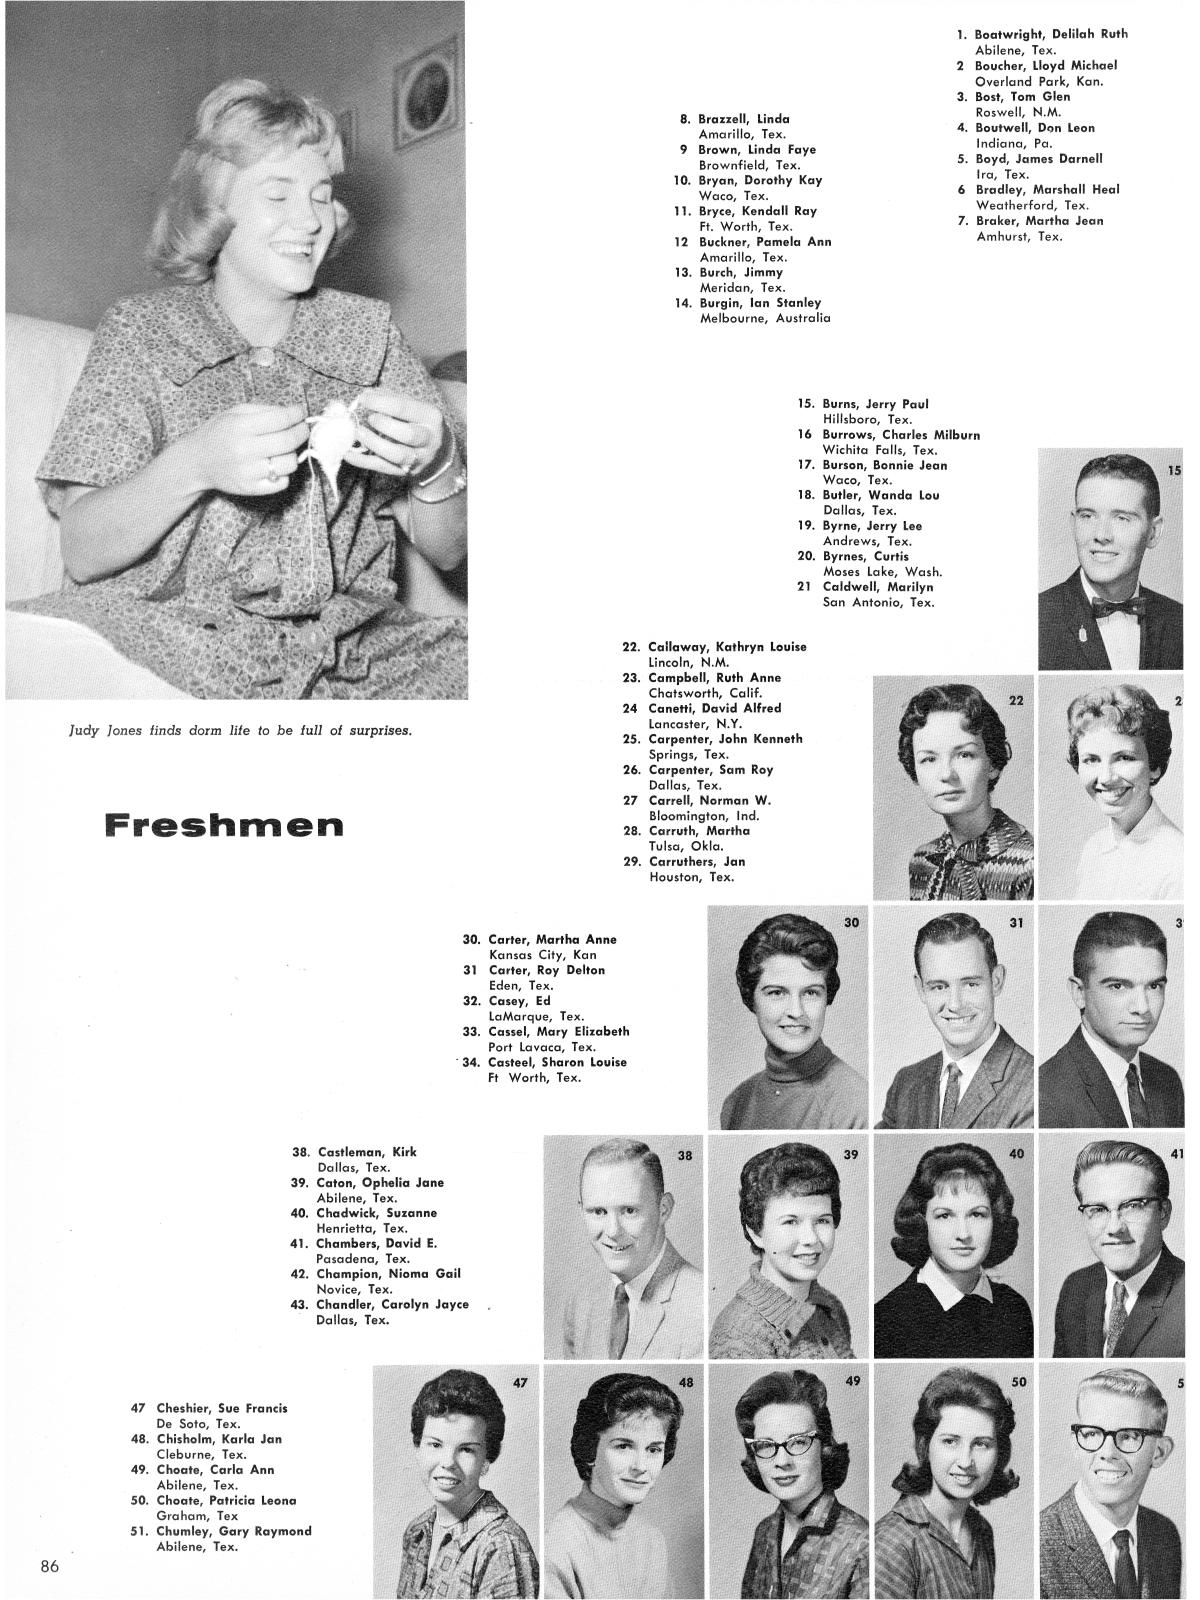 Prickly Pear Yearbook Of Abilene Christian College 1961 Page 86 The Portal To Texas History